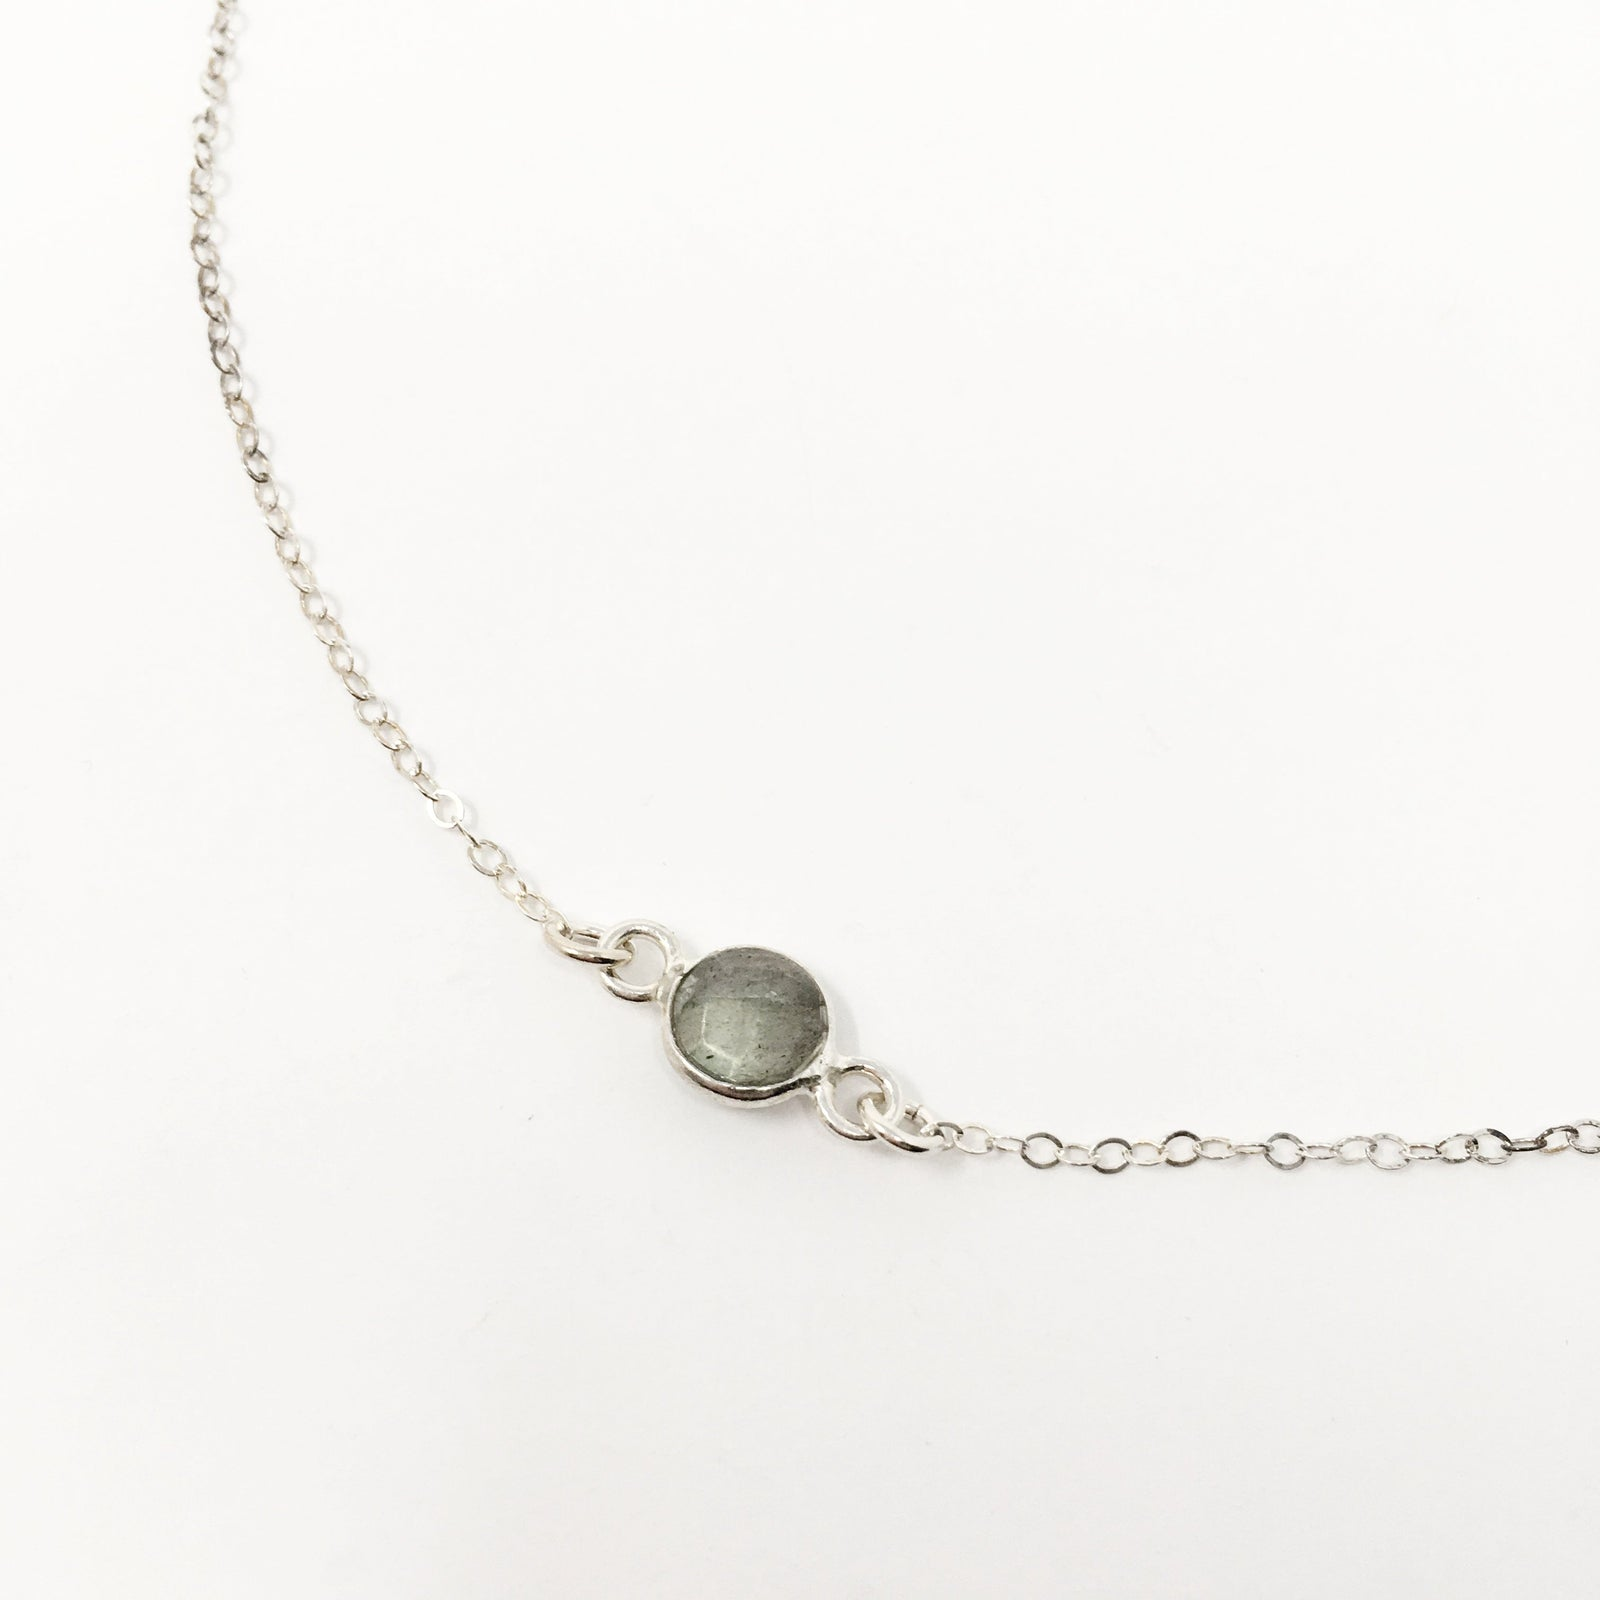 STERLING SILVER LABRADORITE STONE NECKLACE